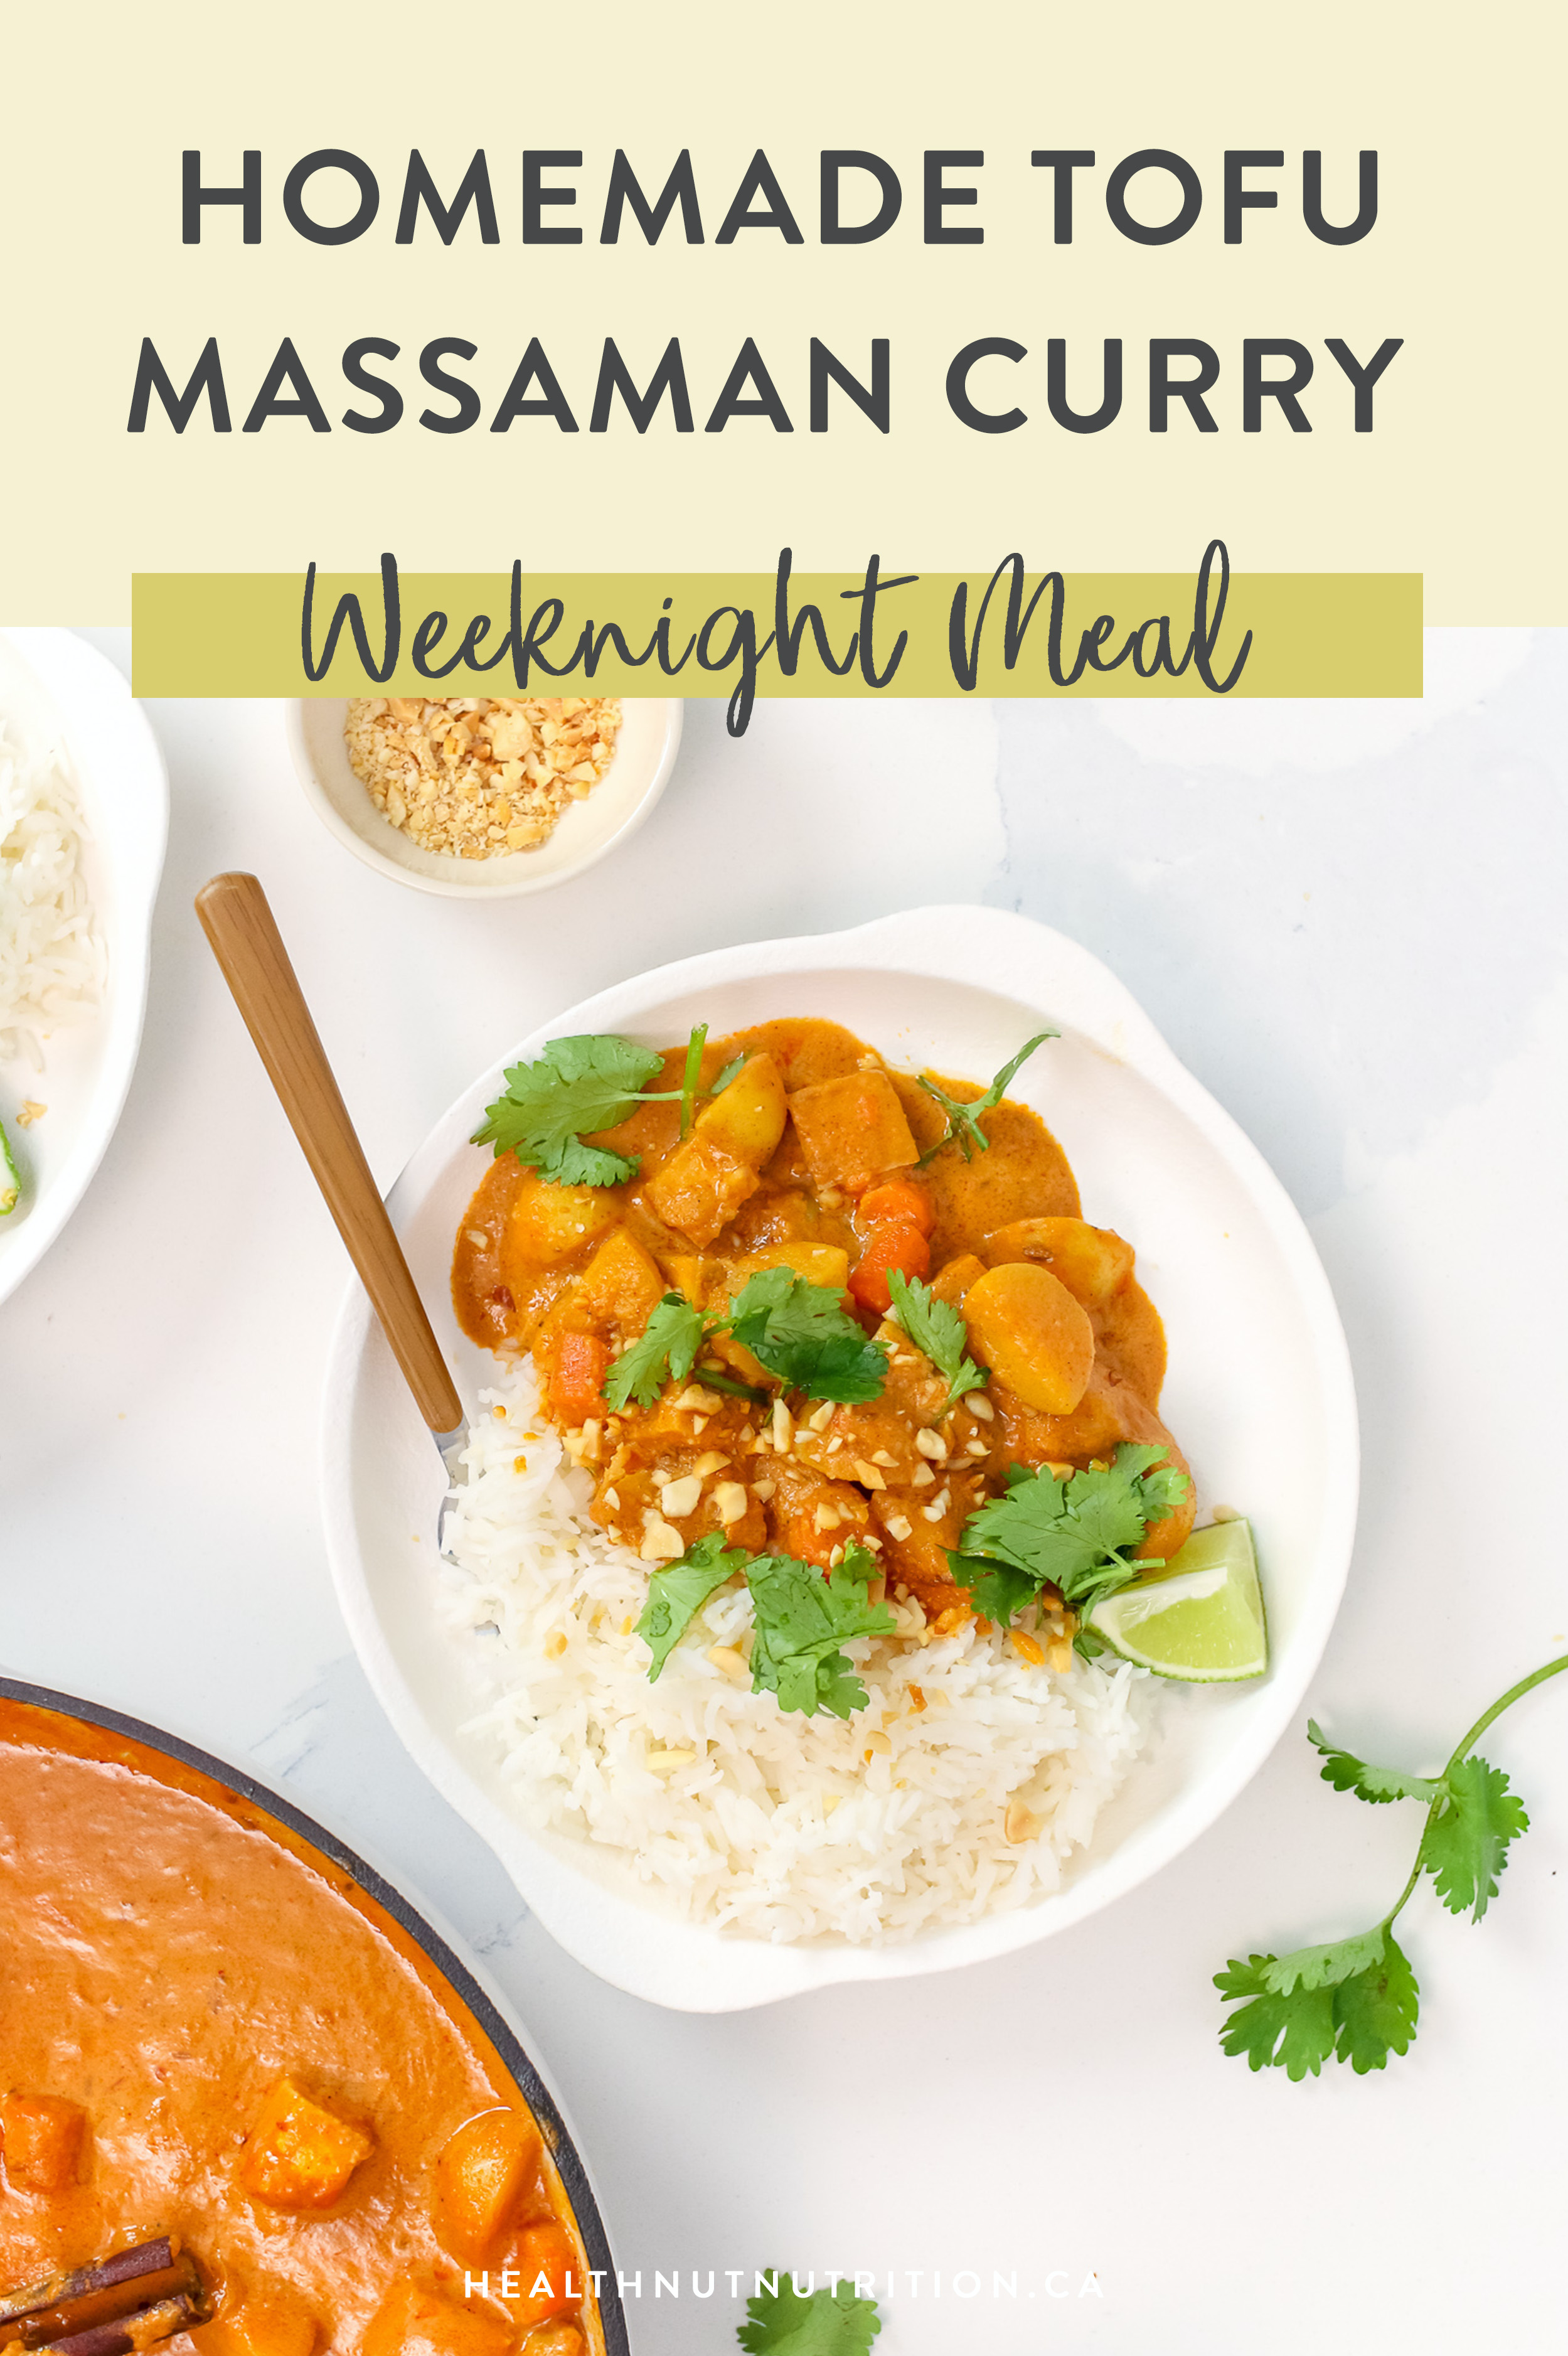 This Thai inspired Homemade Massaman Curry is saucy, comforting and delicious. Made with onion, carrots, potatoes and crispy tofu simmered in an aromatic sauce and served over jasmine rice. It's quick, easy and only requires 1 pot to make!